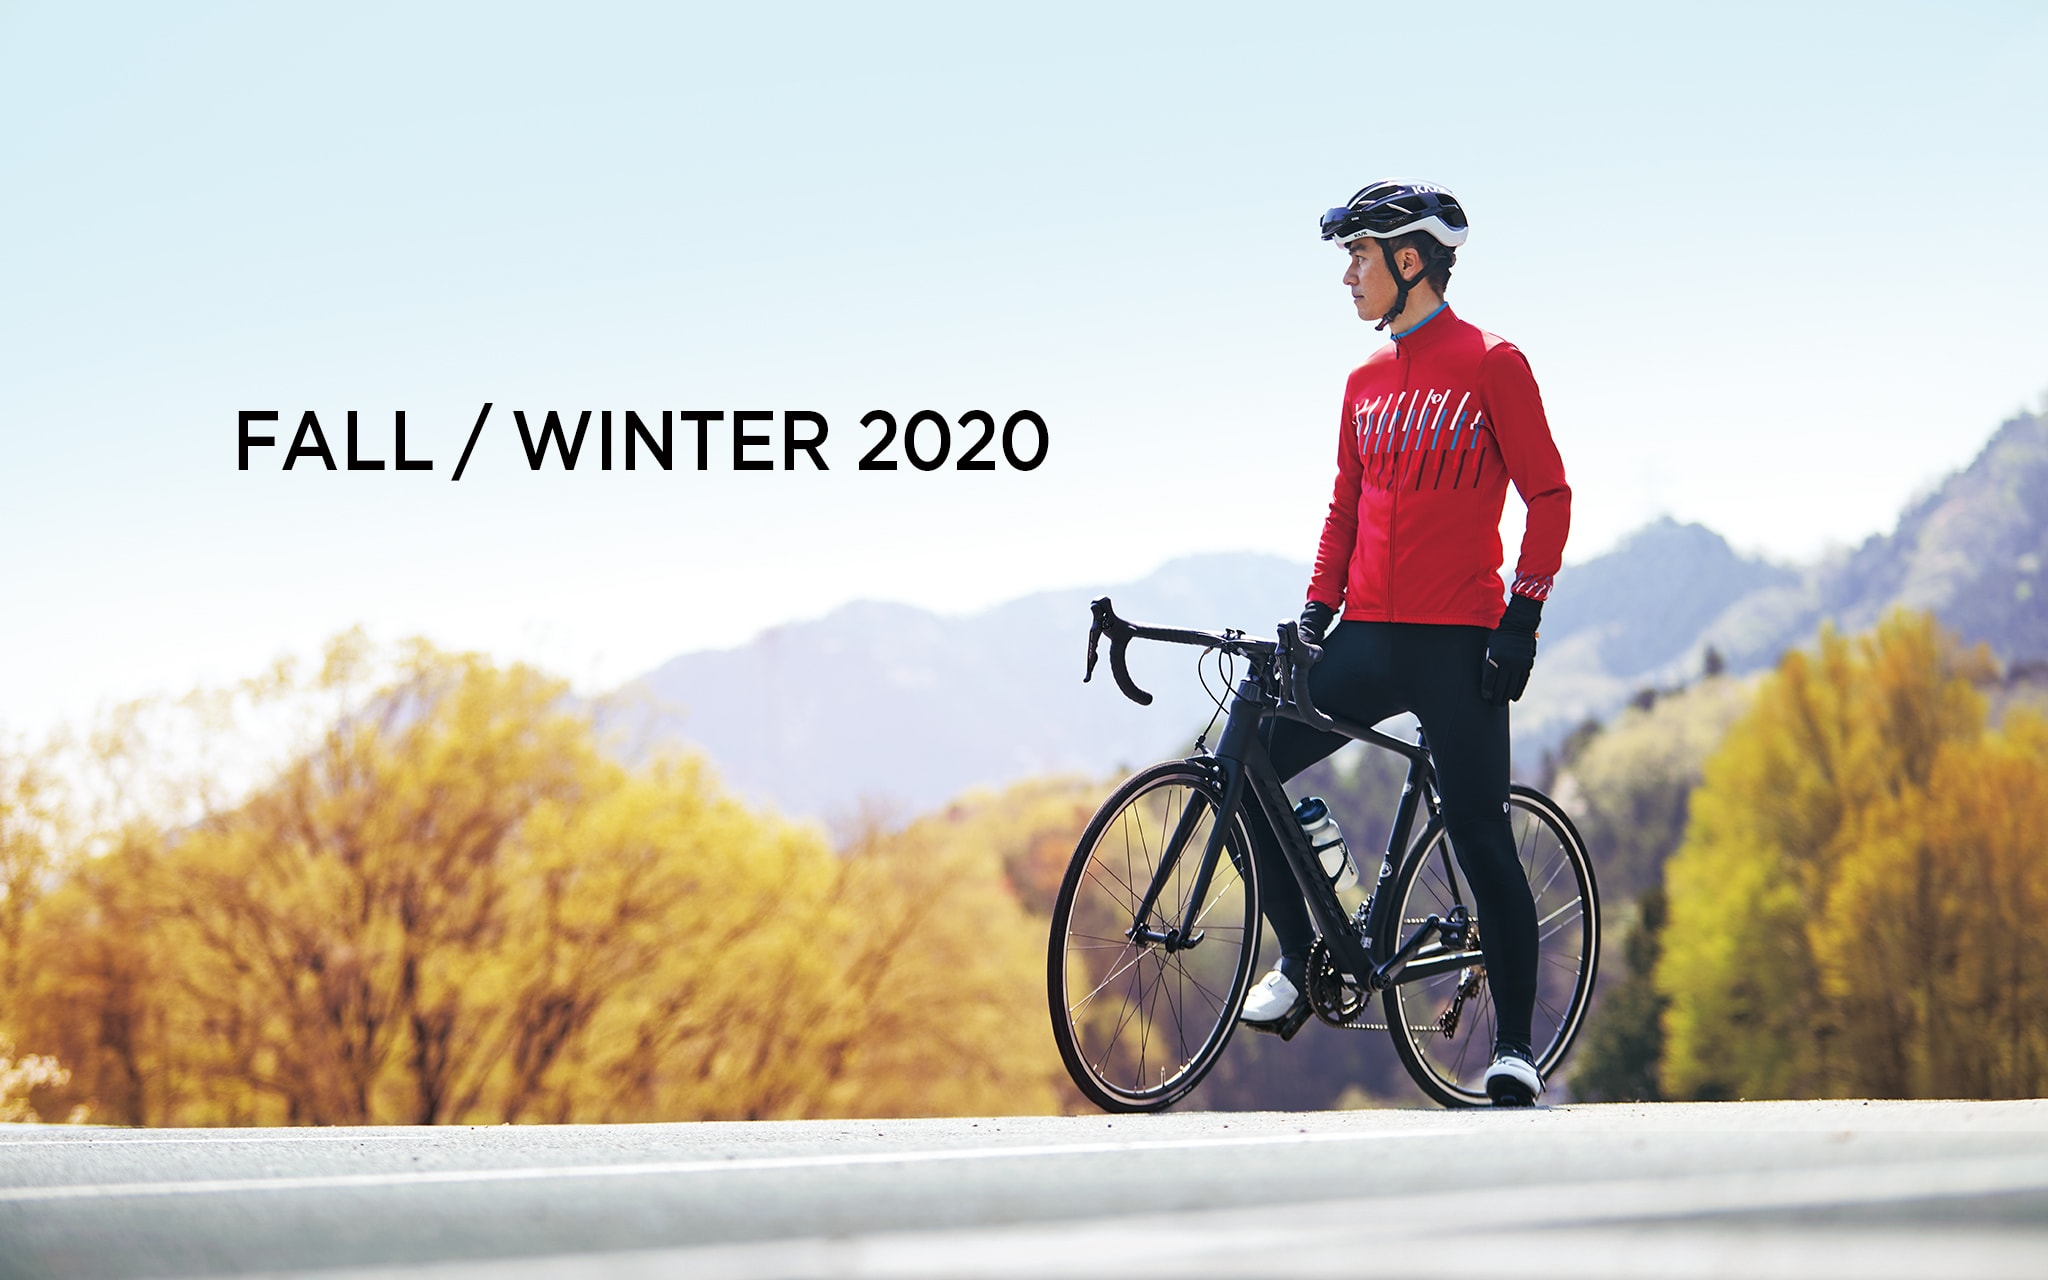 2020 FALL/WINTER